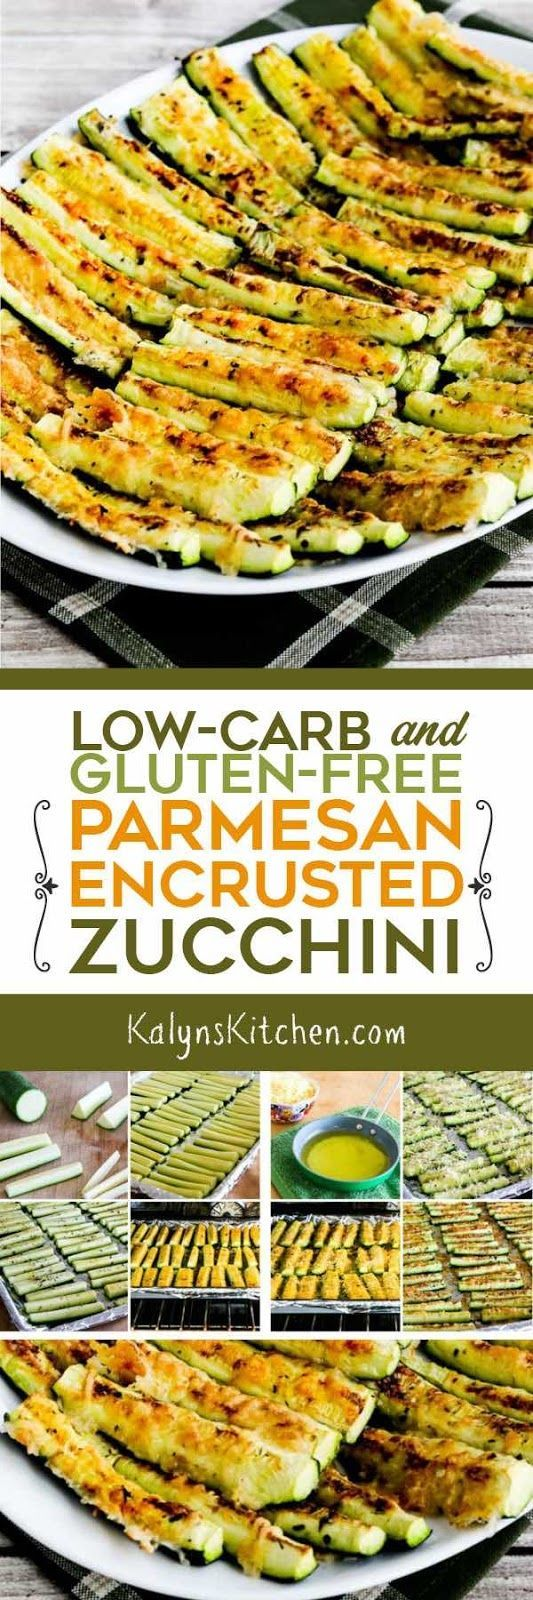 Low-Carb and Gluten-Free Parmesan Encrusted Zucchini is absolutely delicious and couldn't be easier to make, and this wonderful recipe for zucchini is also Keto, low-glycemic, meatless, and can be South Beach Diet friendly with portion control! [found on KalynsKitchen.com]